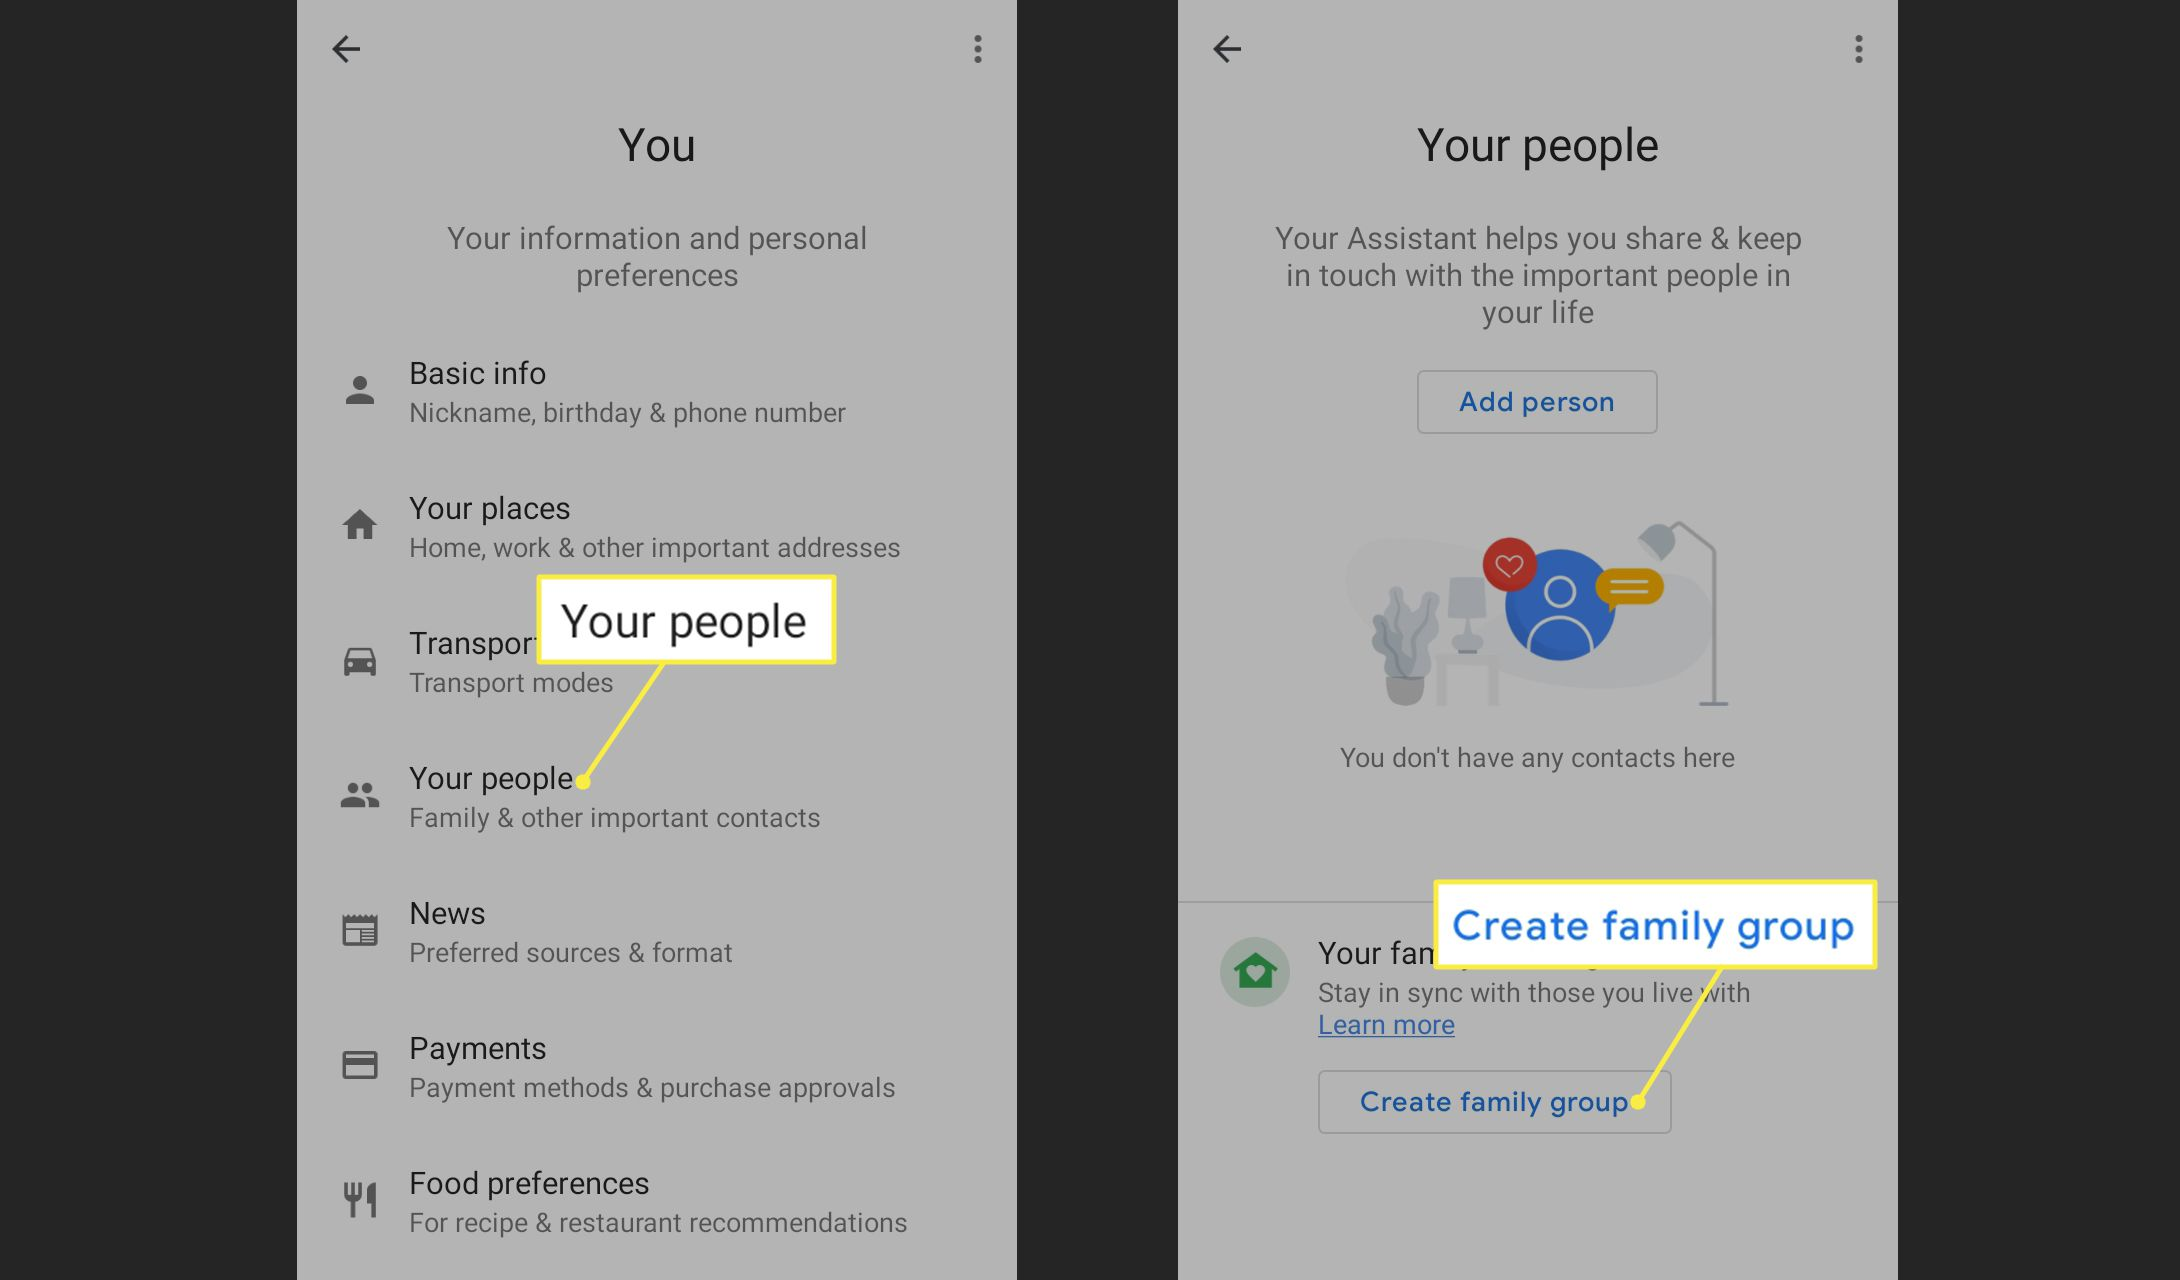 Your People and Create Family Group in Google Home app